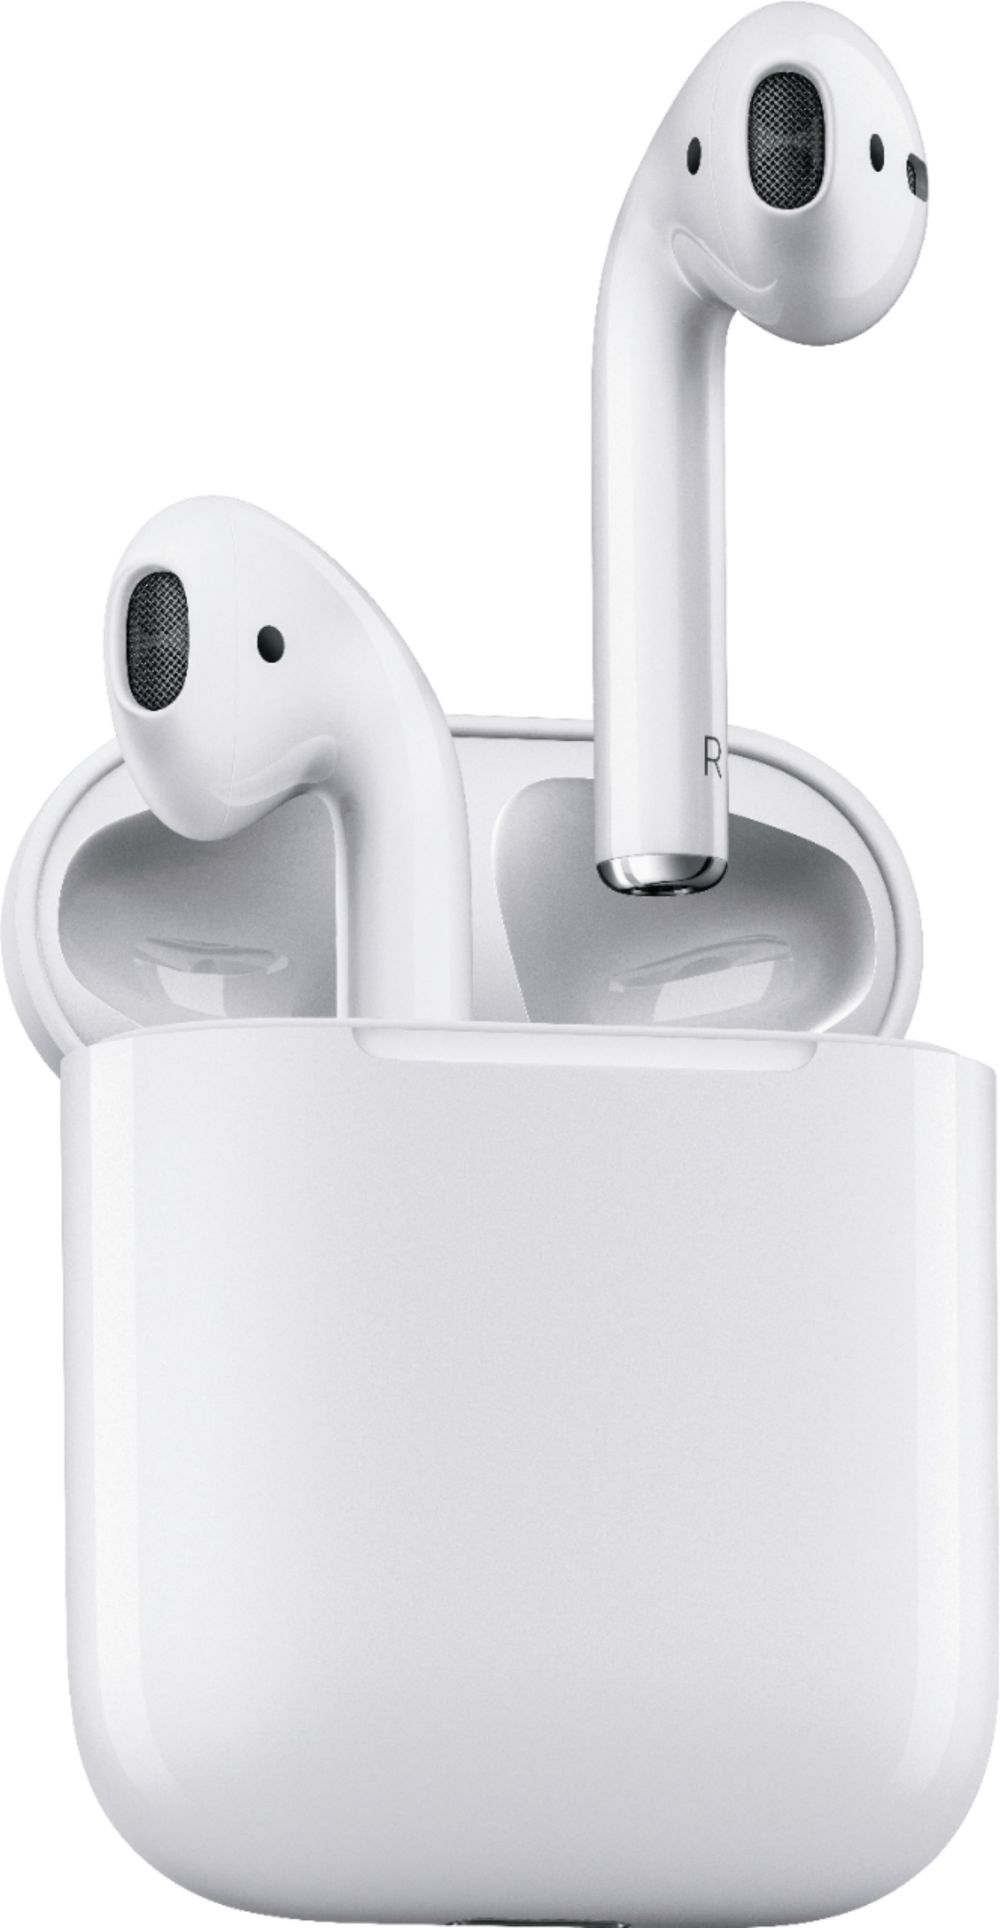 medium resolution of best buy apple airpods with charging case 1st generation white mmef2am a